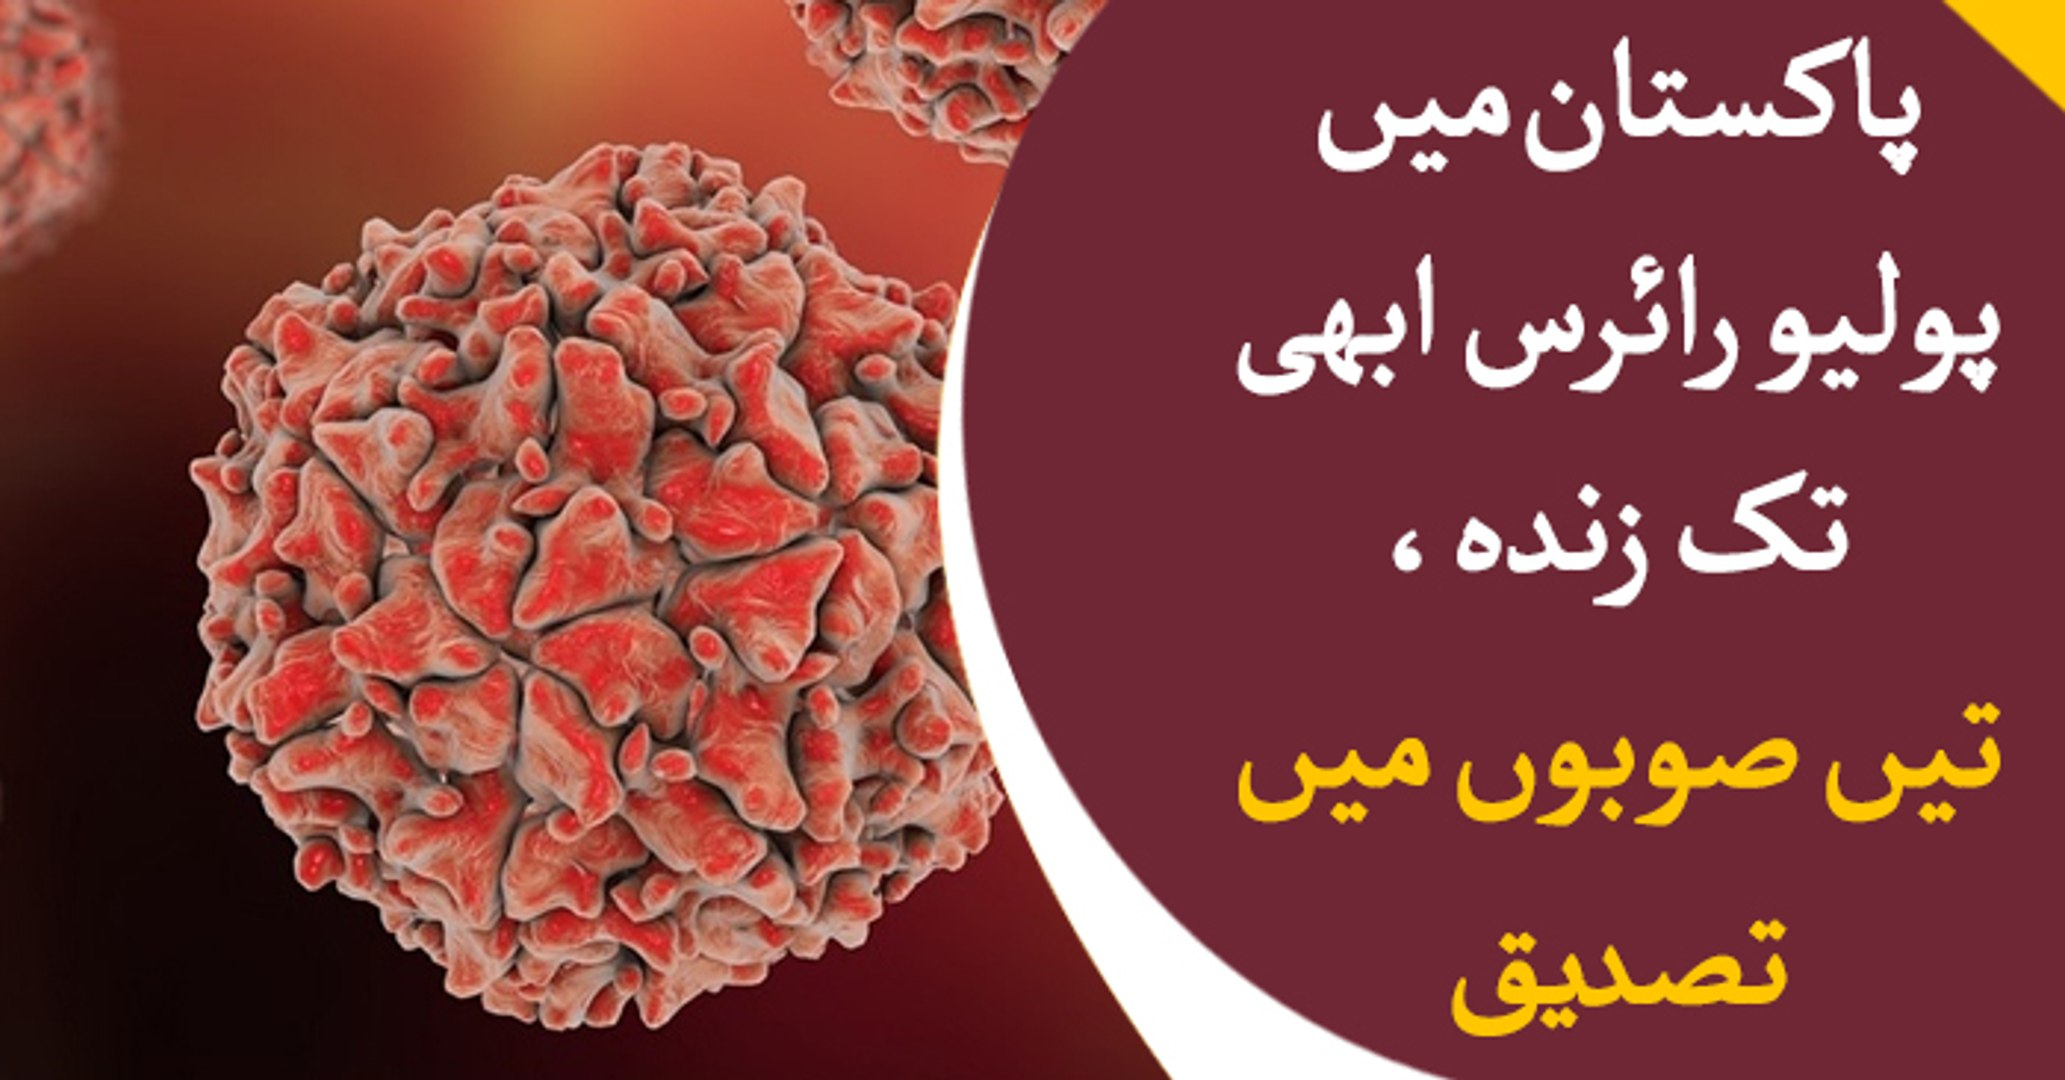 Polio virus found in 3 provinces of Pakistan